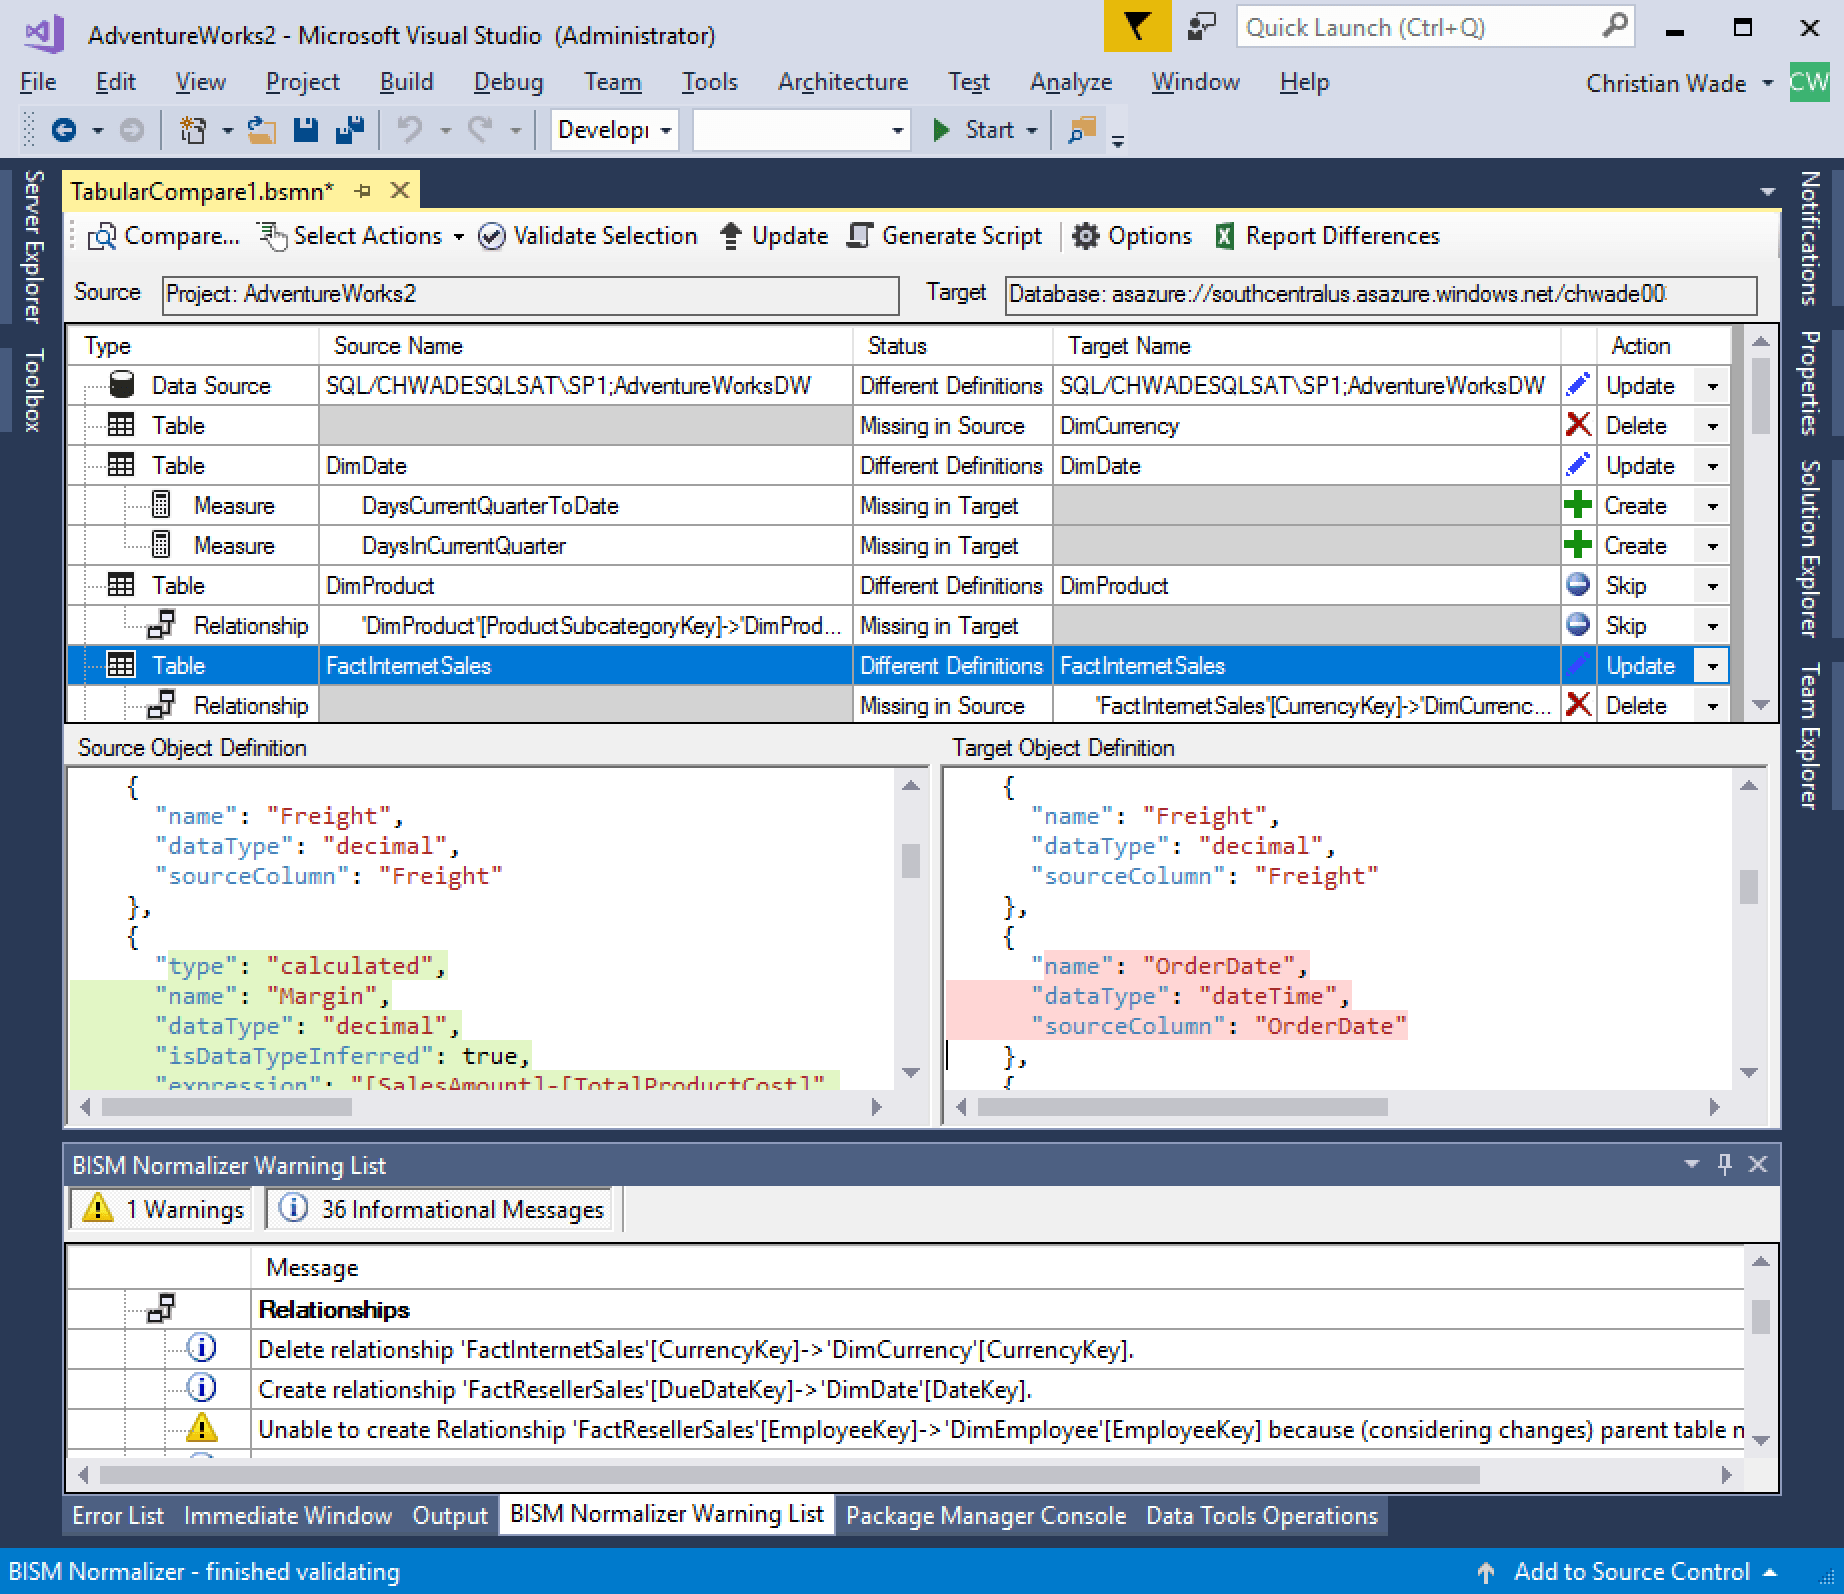 Model Comparison for Azure Analysis Services - Azure Monitoring Tool